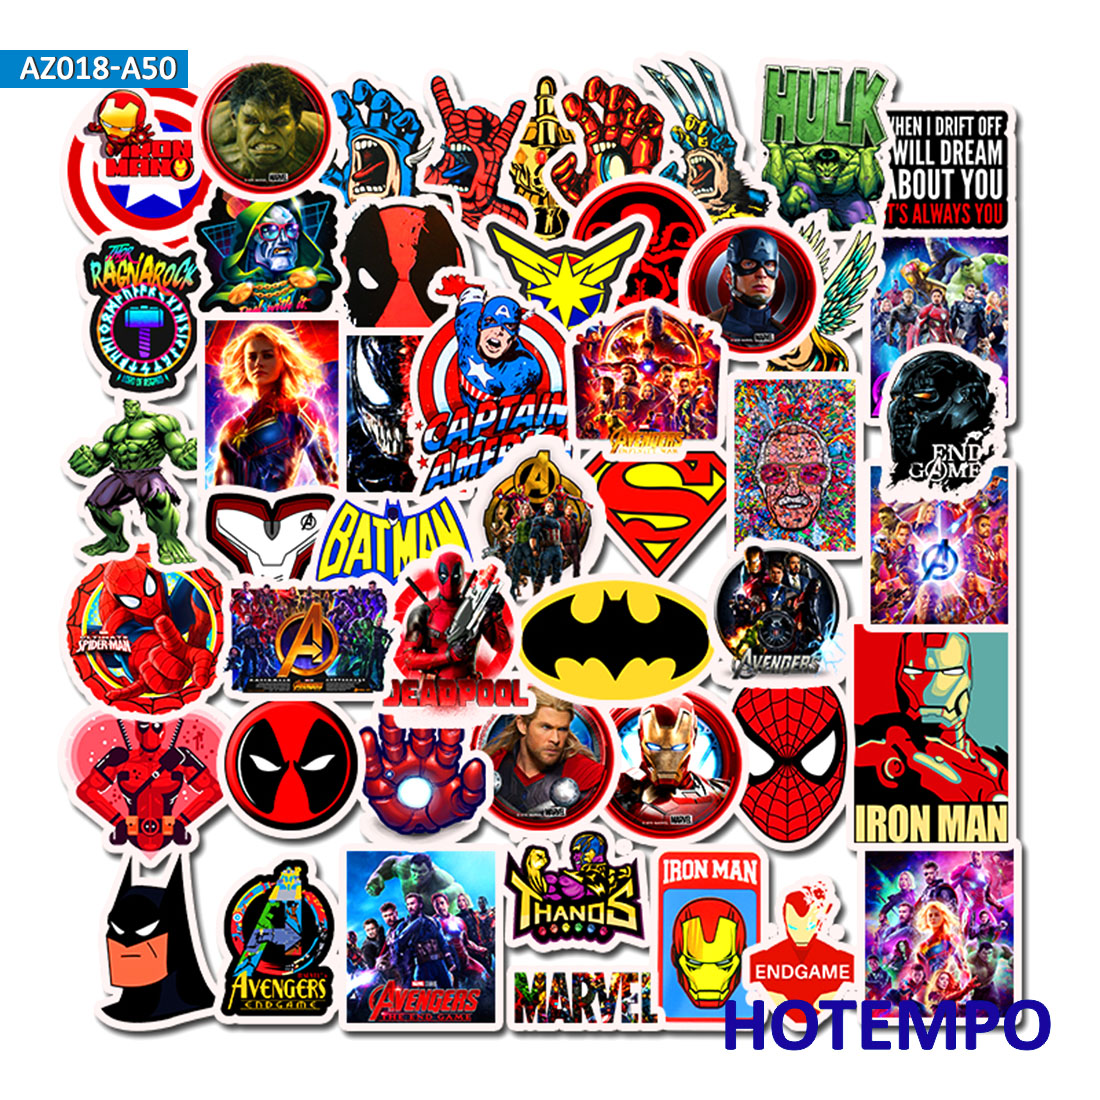 Super Hero Cartoon Comic Anime Stickers Pack Movies Character Men For Mobile Phone Laptop Luggage Skateboard Car Decal Stickers